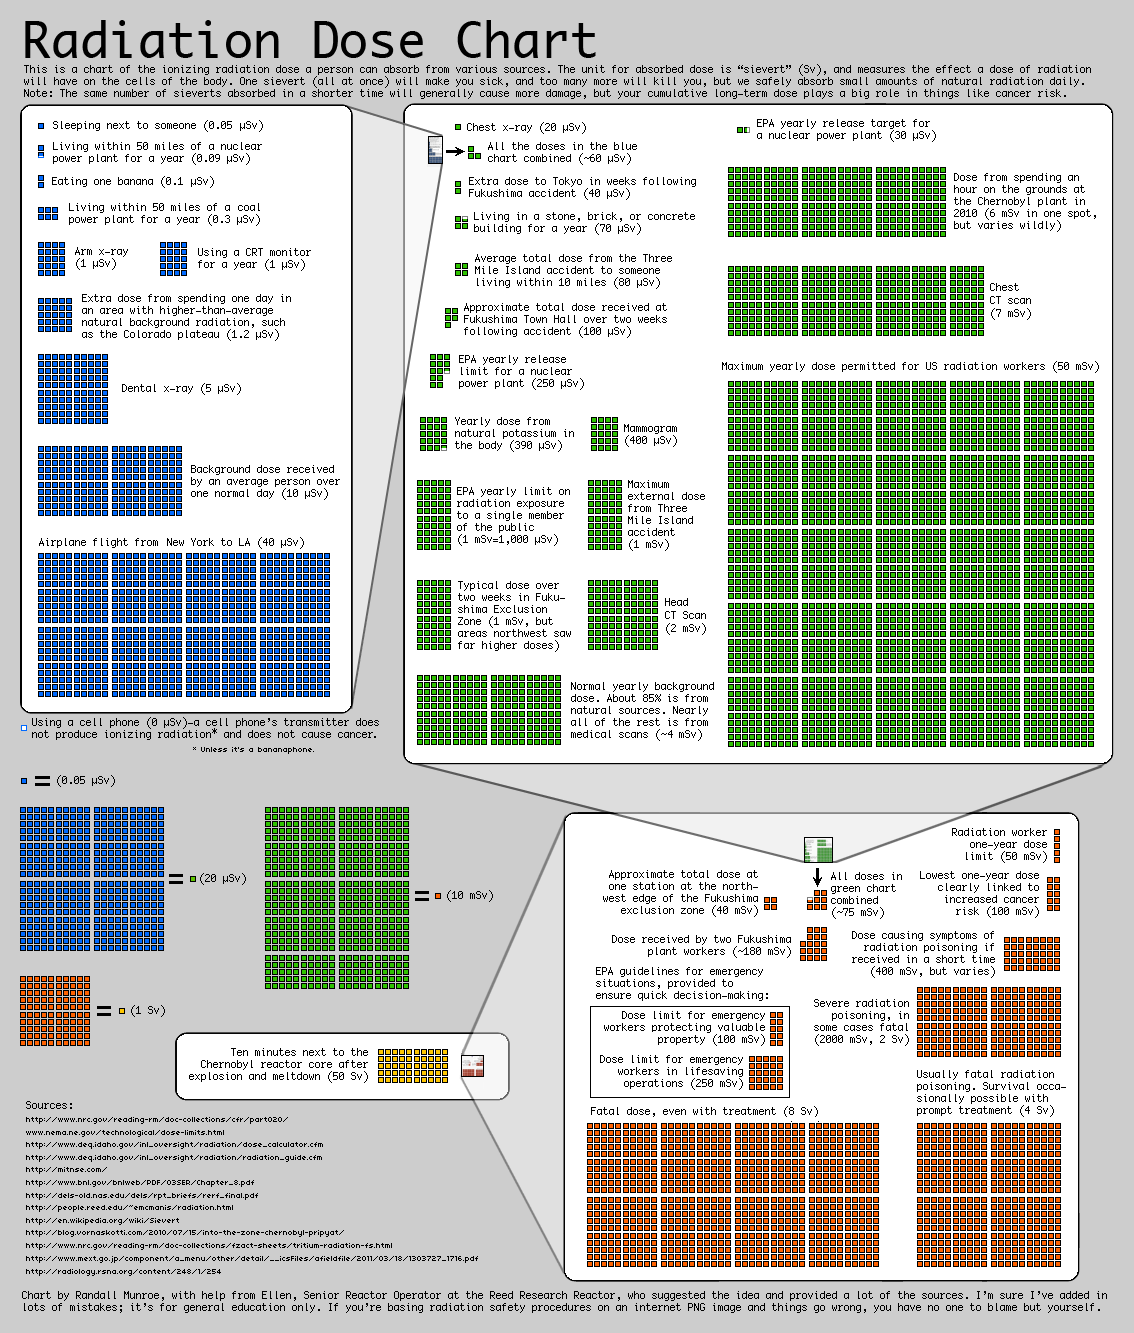 Radiation Dose Chart from XKCD